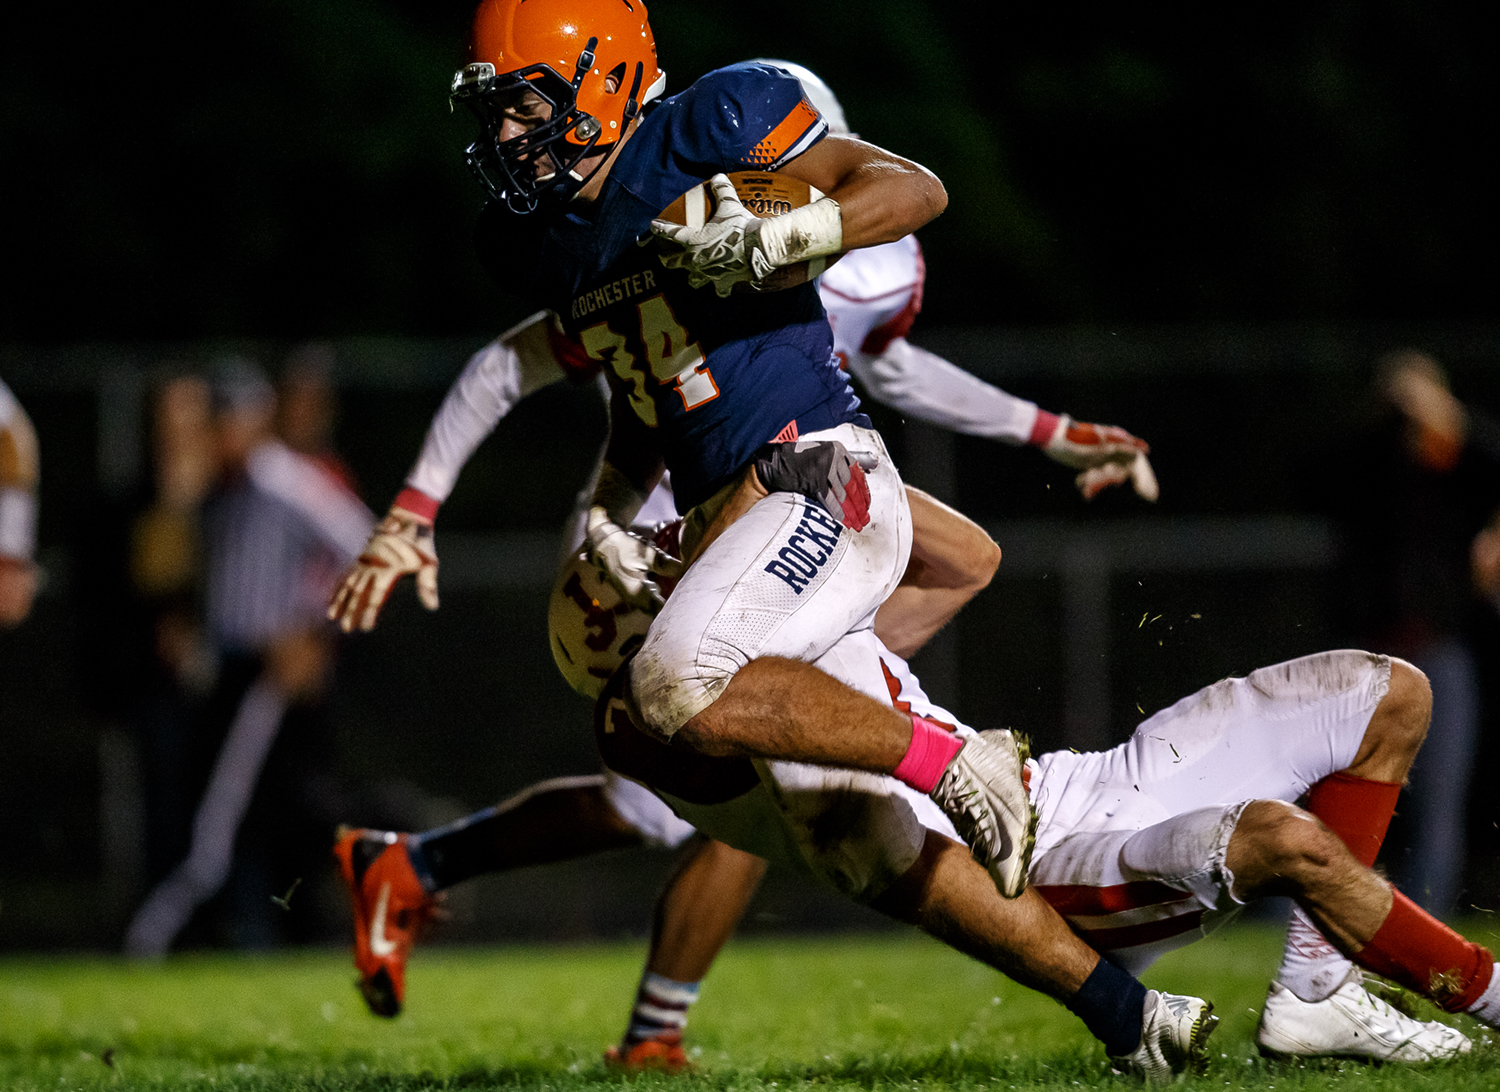 Rochester's Evan Sembell (34) breaks a tackle from Jacksonville's Walt Miller (7) for a touchdown during the first half at Rocket Booster Field, Friday, Oct. 10, 2014, in Rochester, Ill. Justin L. Fowler/The State Journal-Register